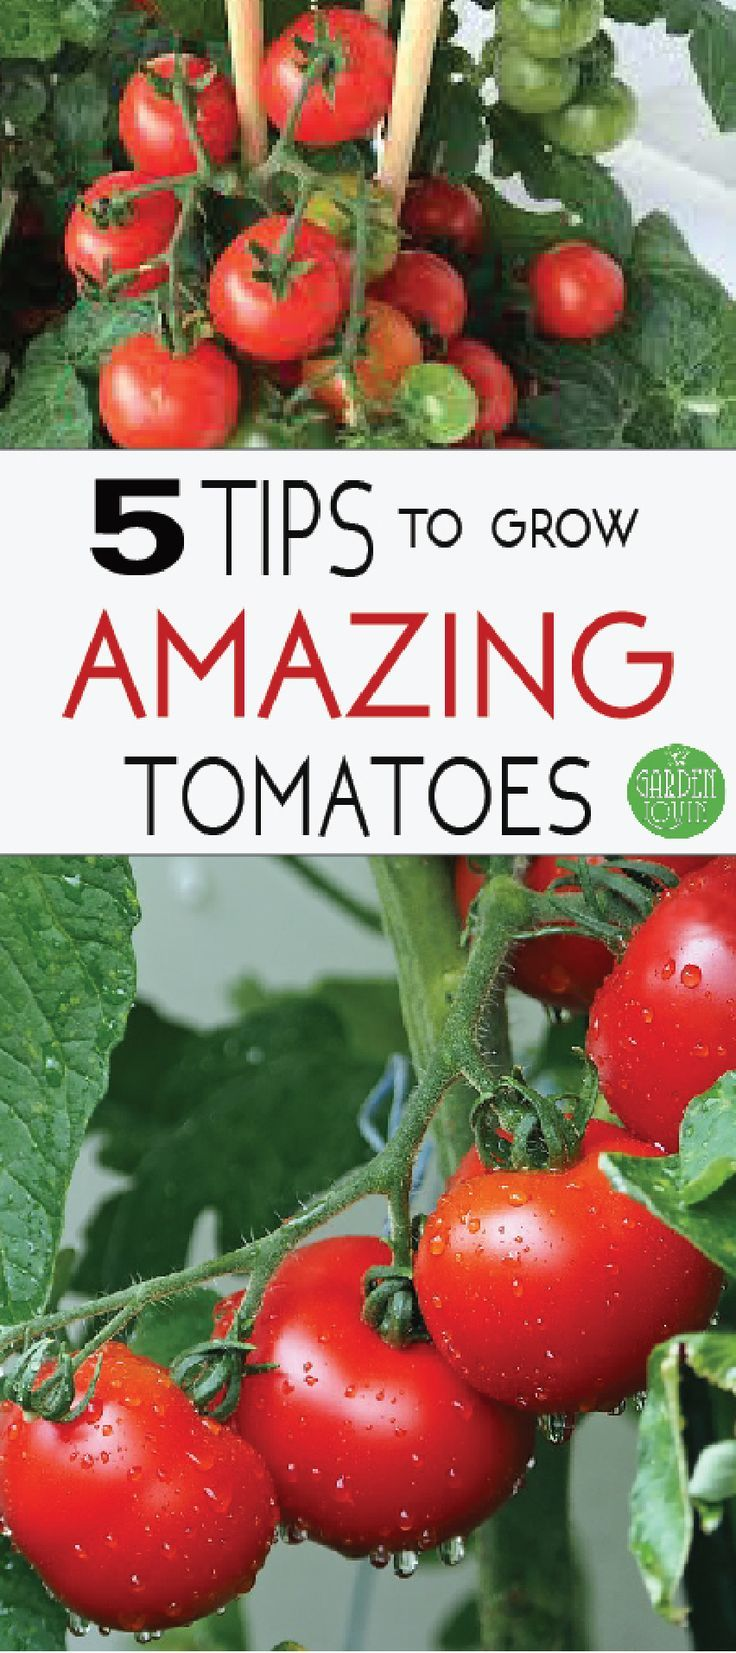 How To Grow Juicy Tomatoes With Images Tomato Garden Growing